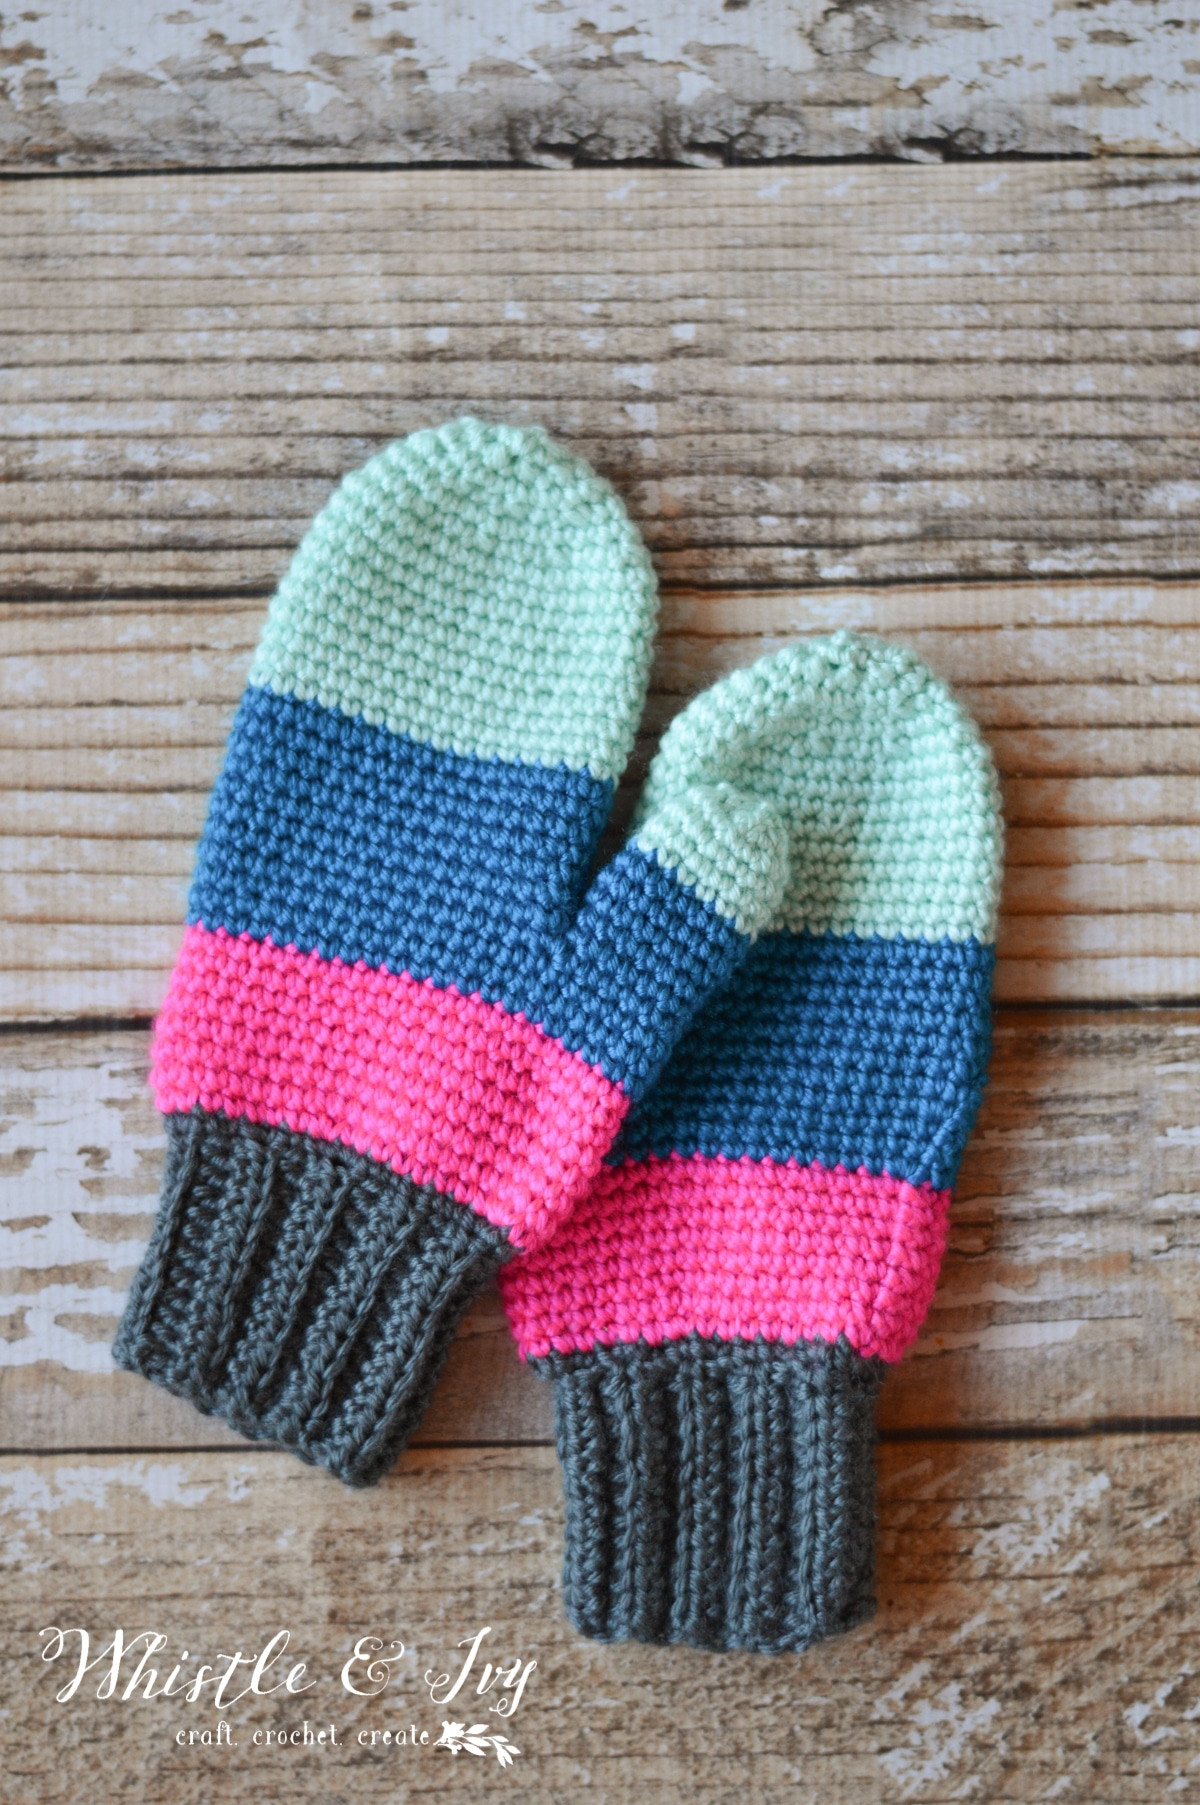 Awesome Crochet Color Block Mittens Whistle and Ivy Crochet Mitten Pattern Of Marvelous 50 Ideas Crochet Mitten Pattern